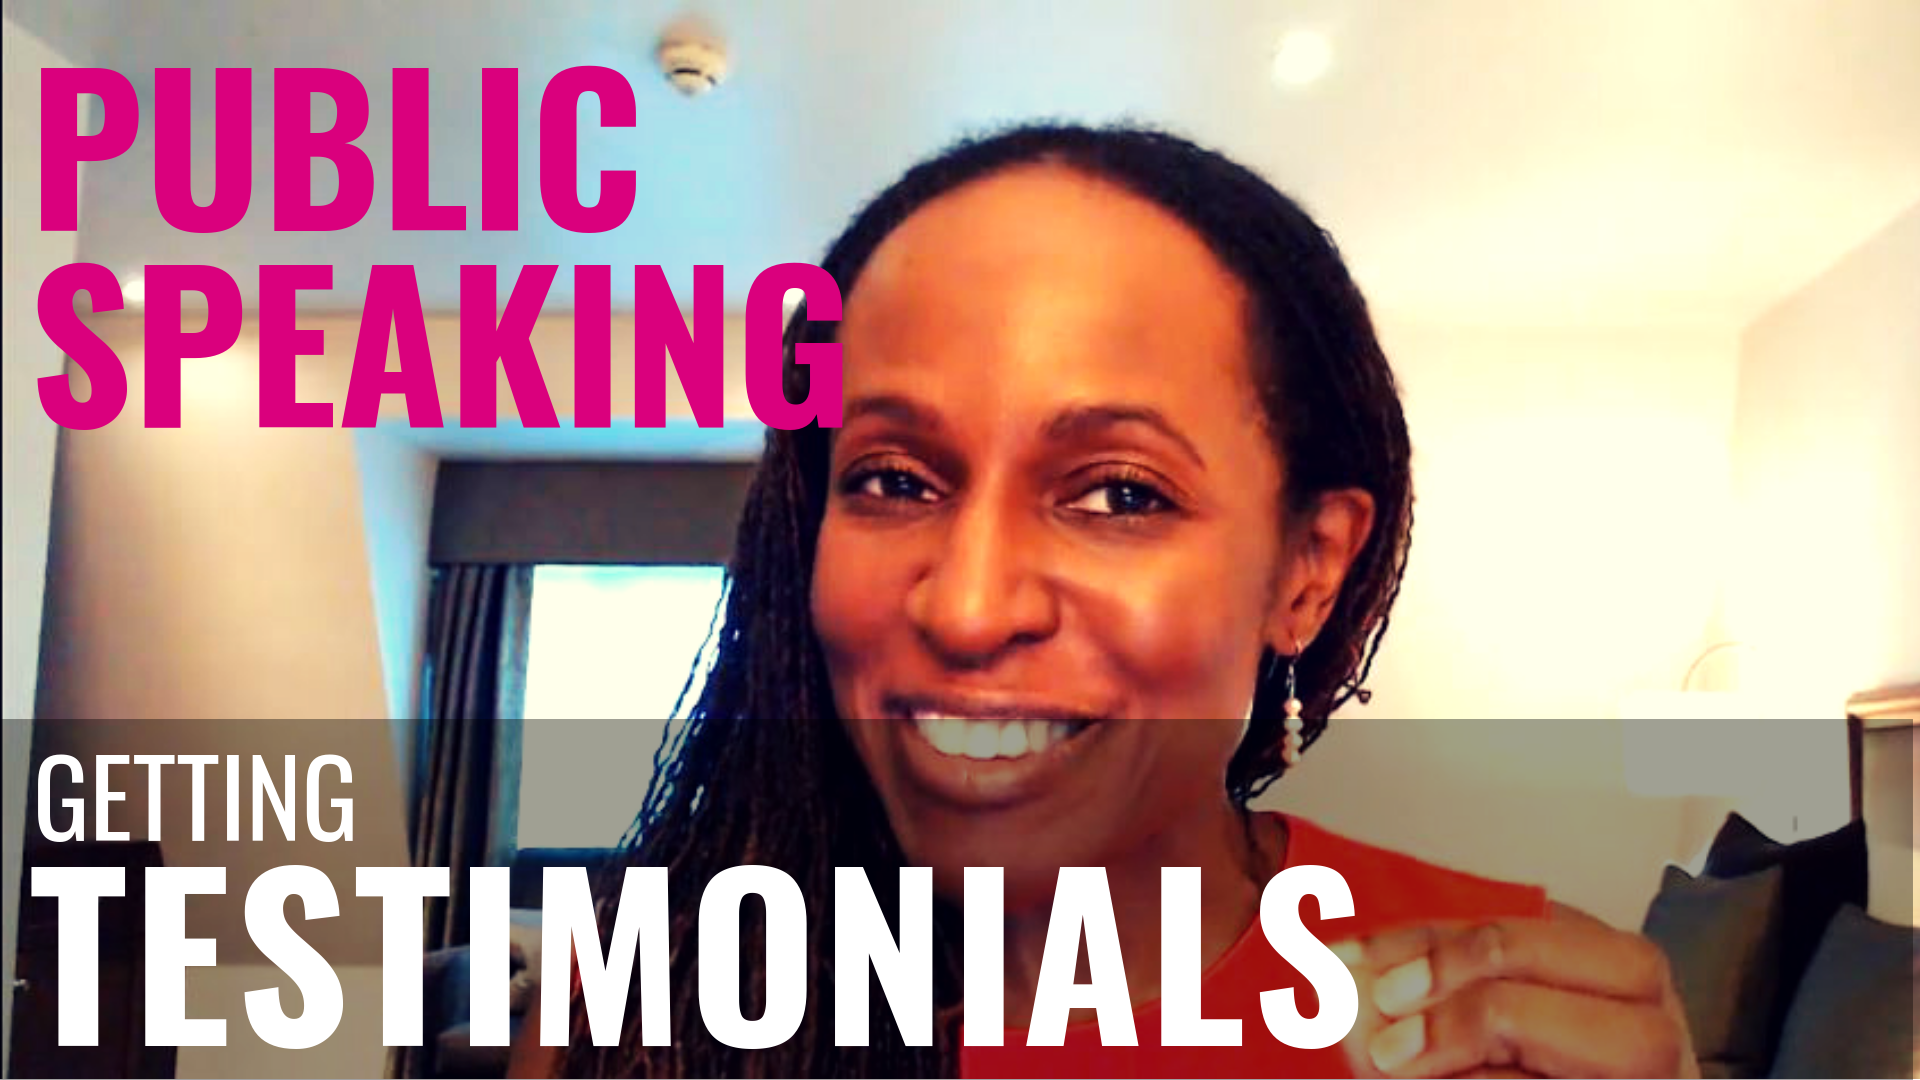 PUBLIC SPEAKING - Getting TESTIMONIALS